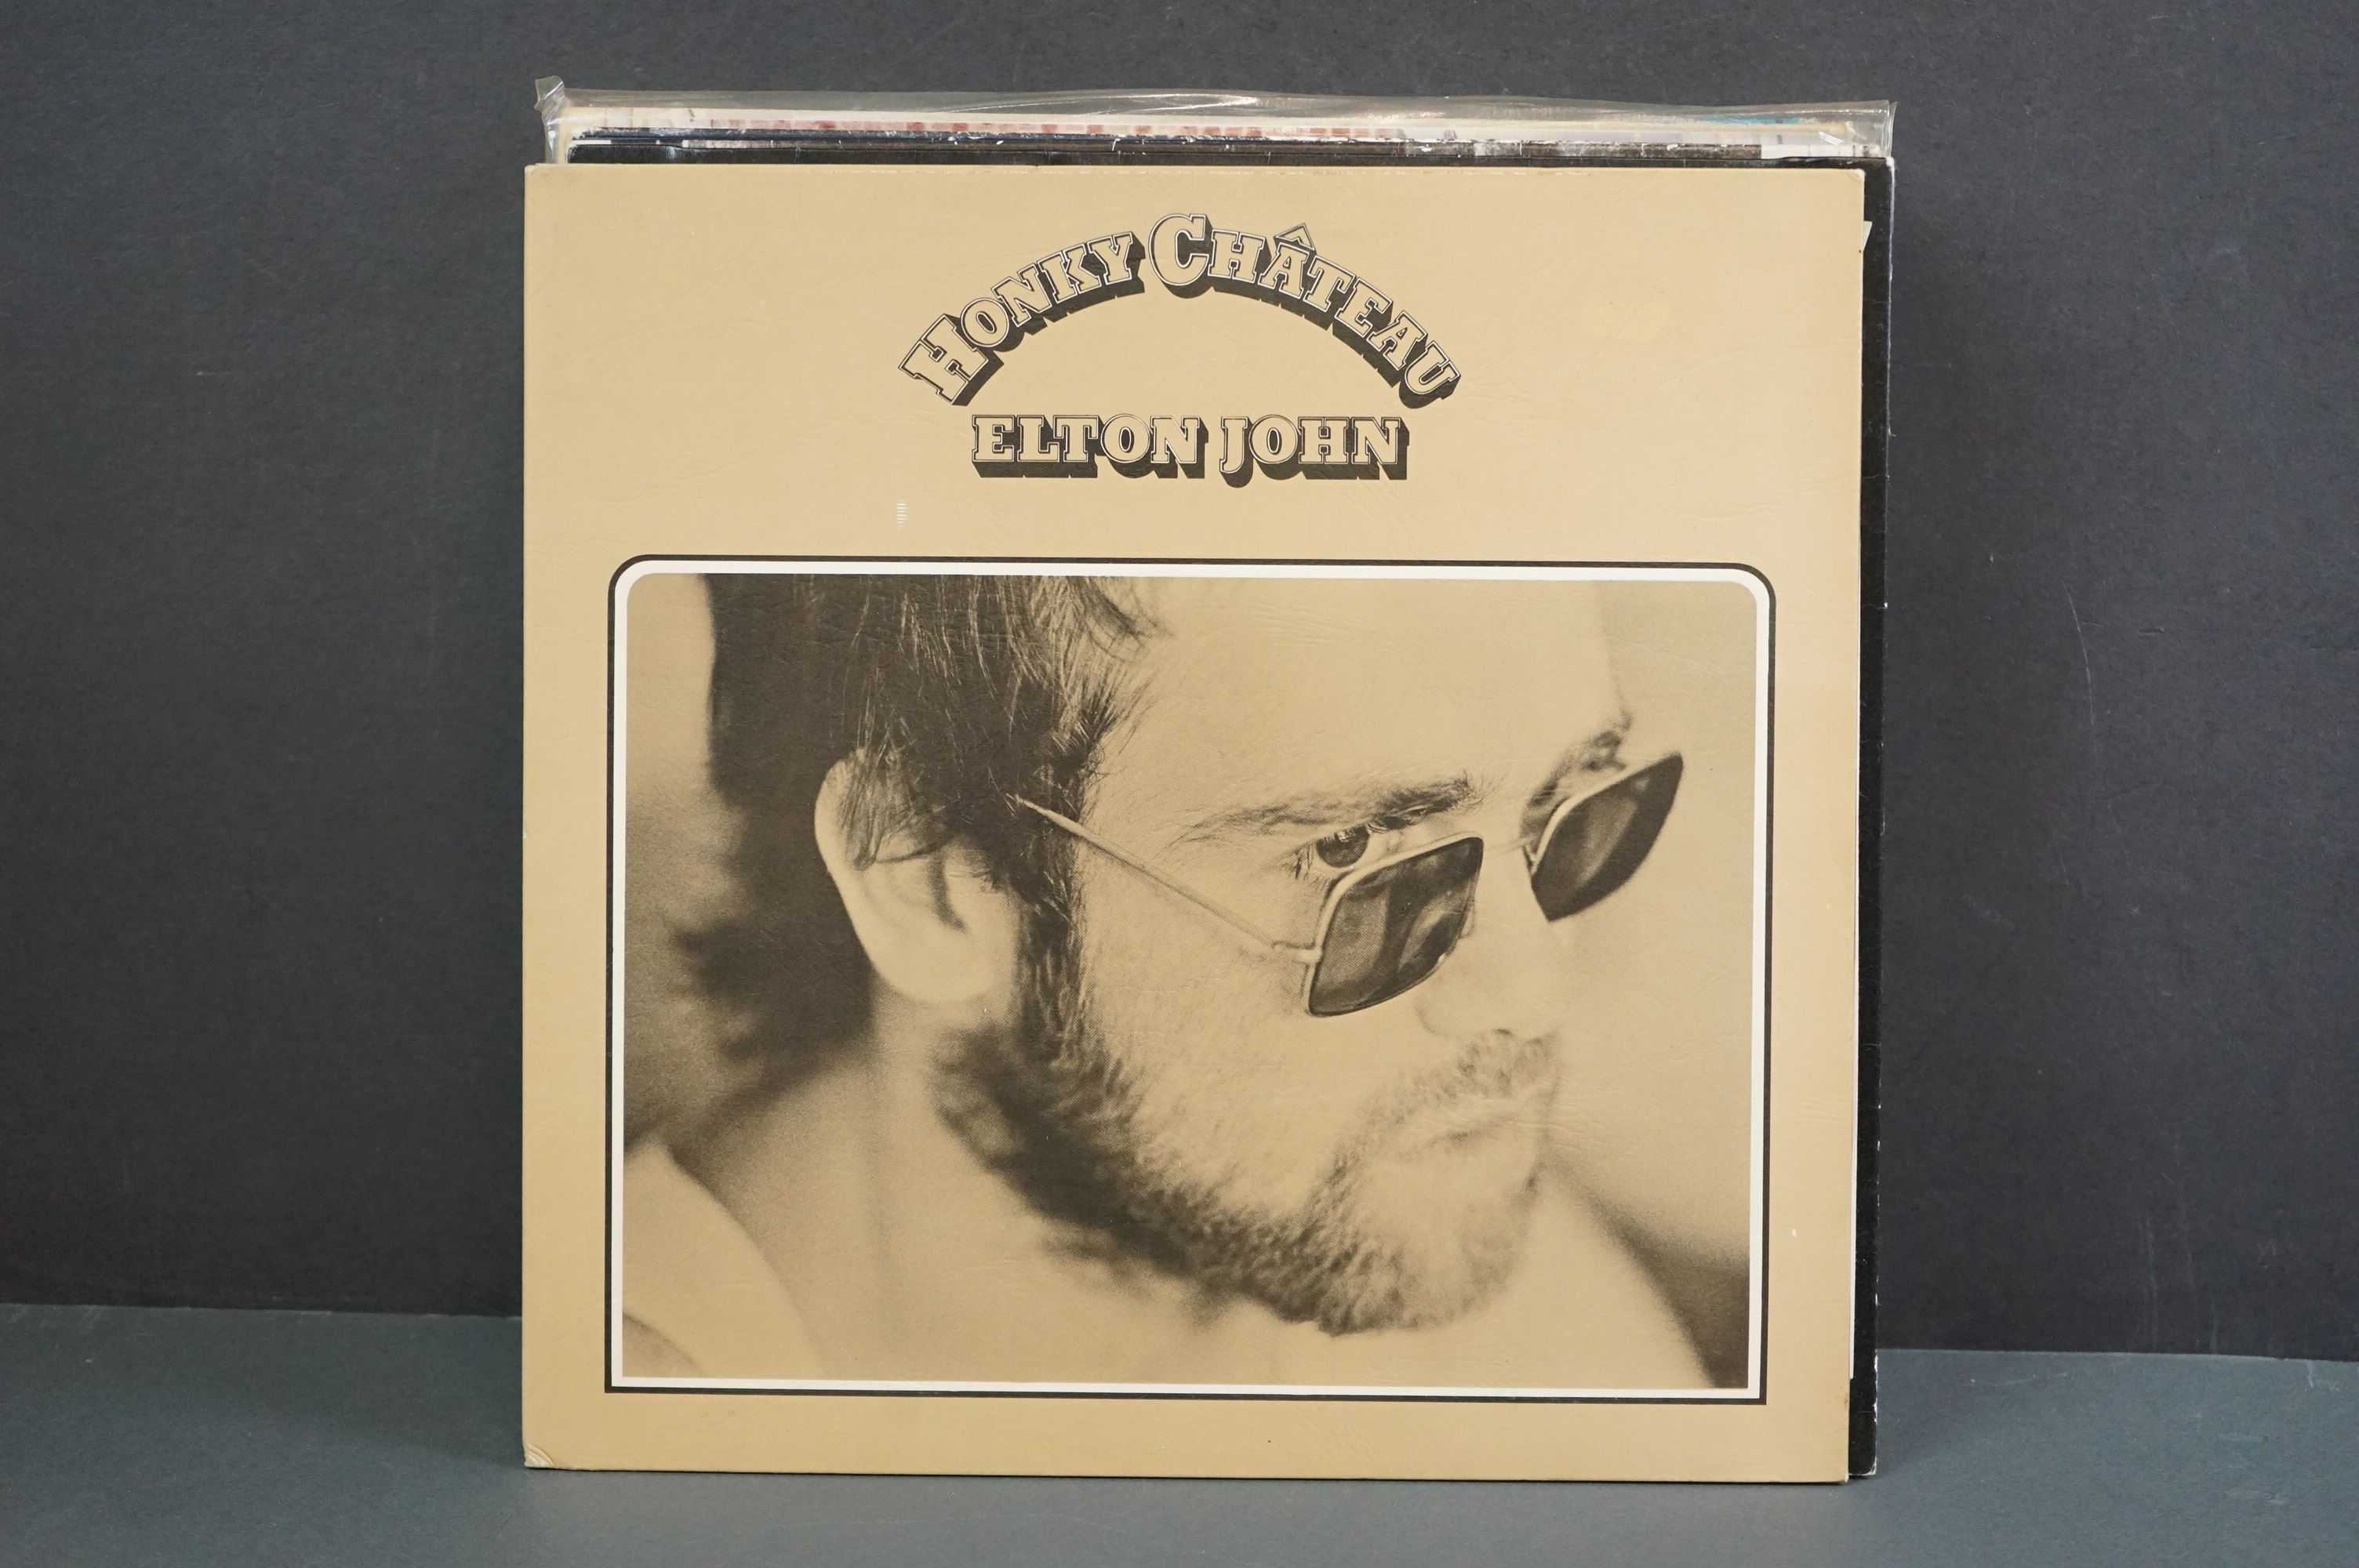 Vinyl - 16 Elton John LPs to include A Single Man, Blue Moves, Greatest Hits, Goodbye Yellow Brick - Image 4 of 16